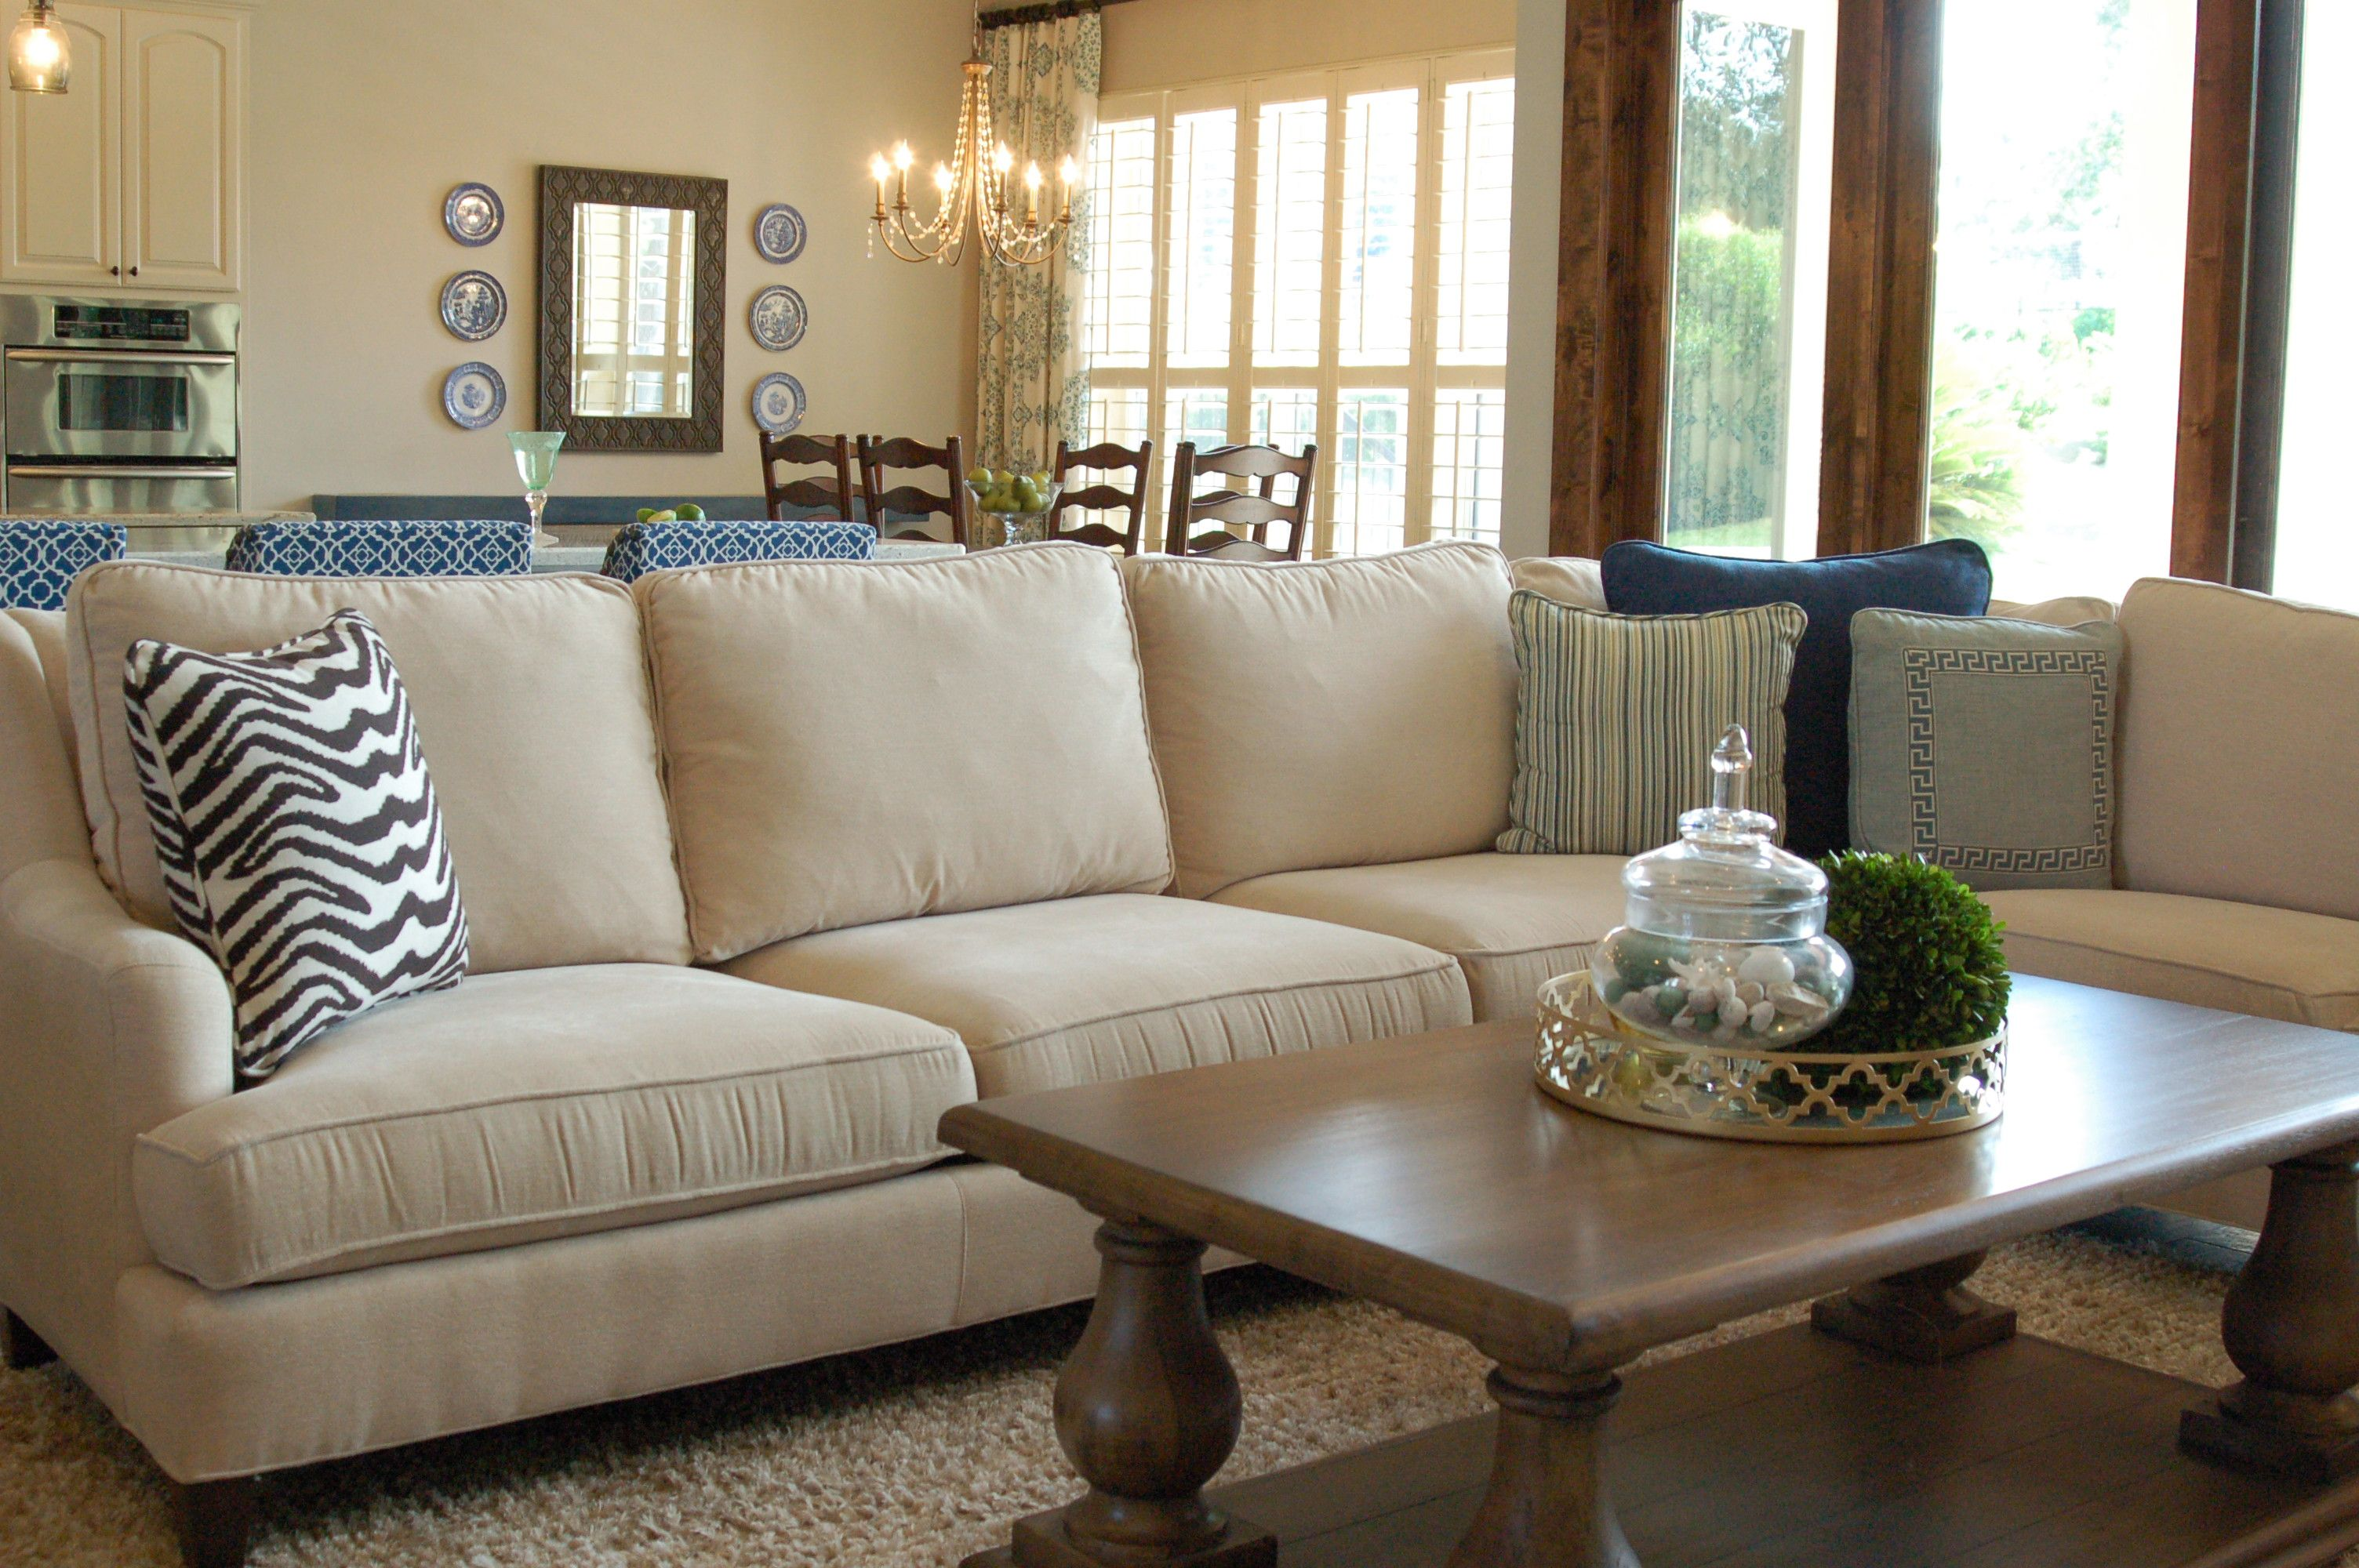 This Taylor King sectional is a cozy gathering spot in the living